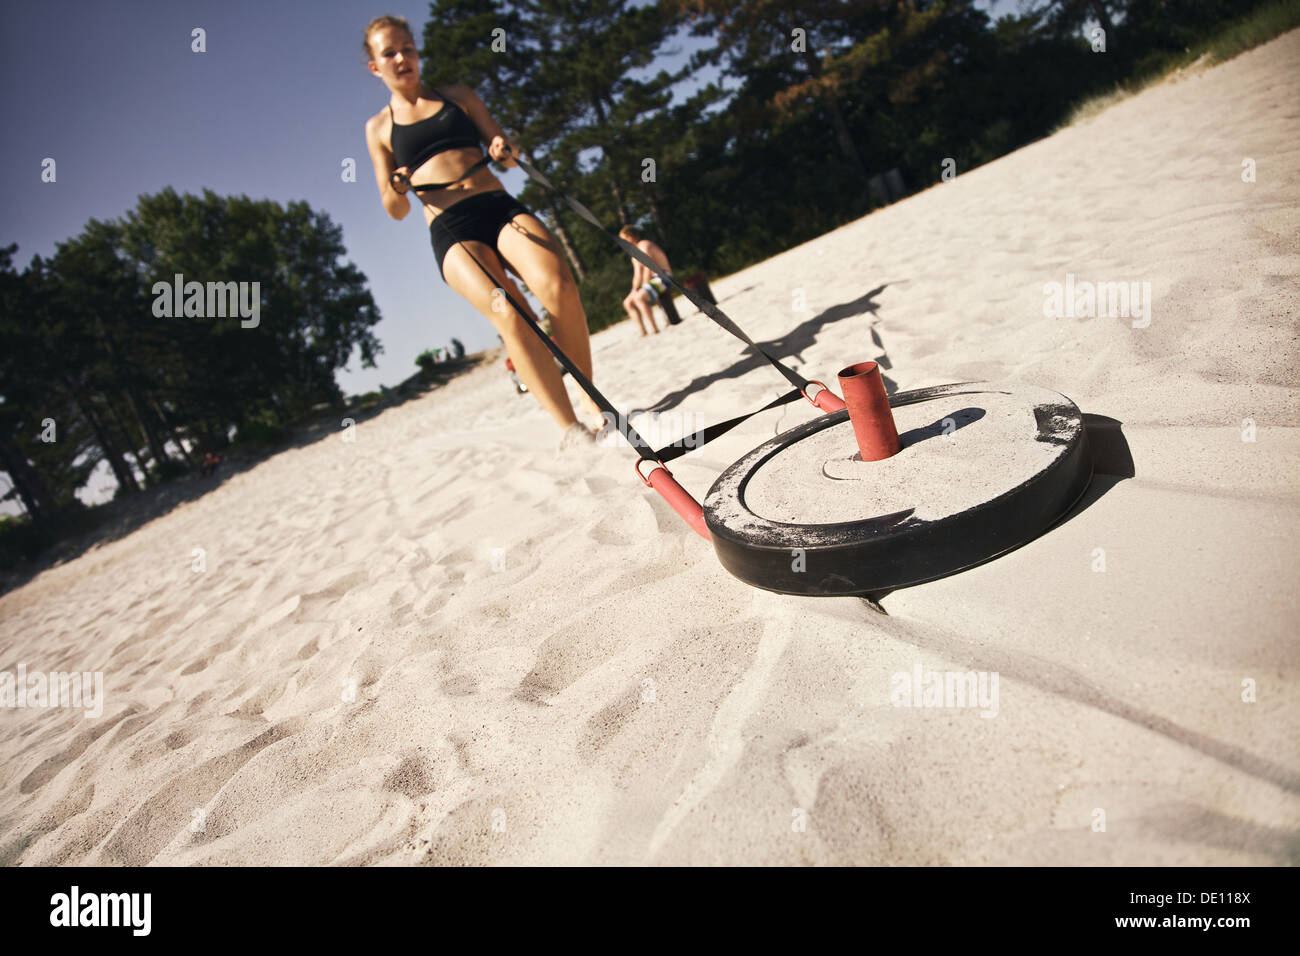 Strong young woman pulling a crossfit sled across a sandy beach outdoors on a hot summer day - Stock Image